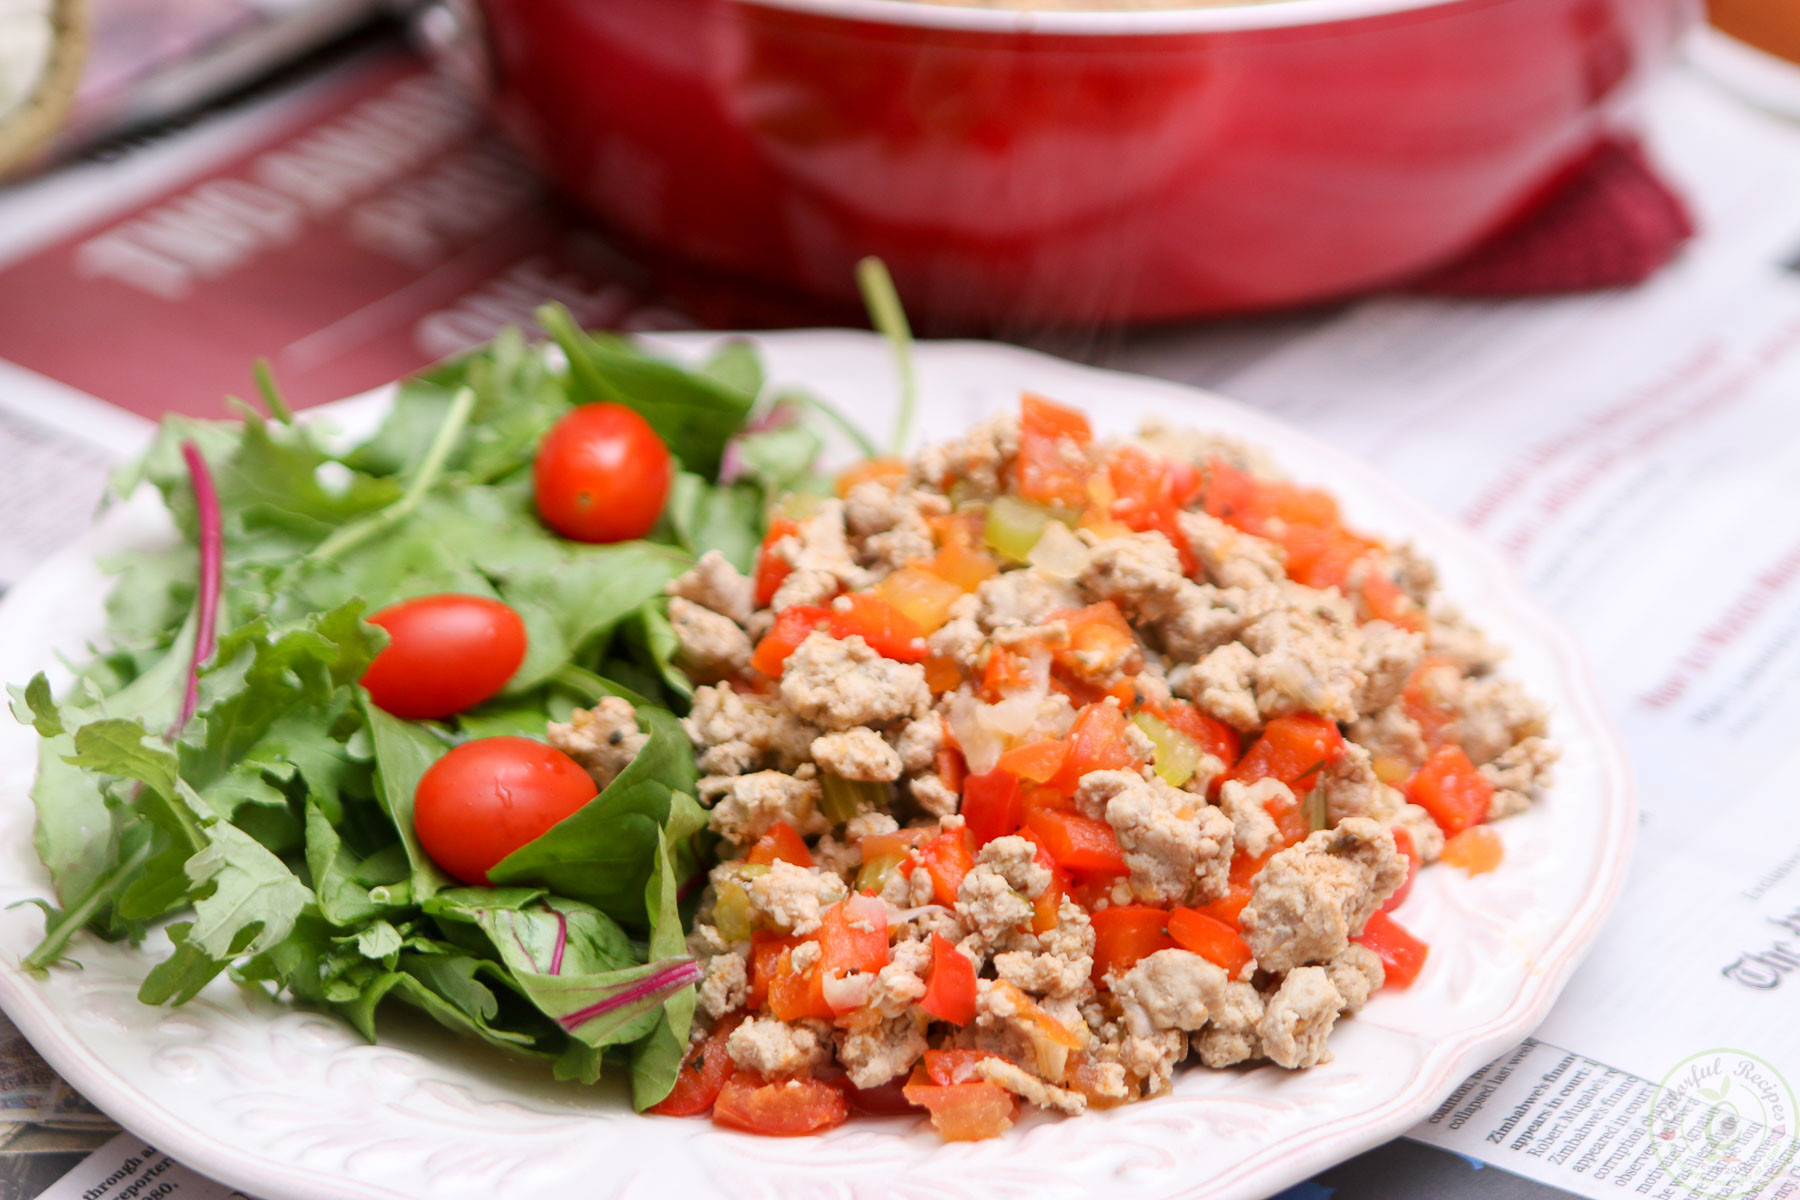 Low Carb Meals With Ground Turkey  Organic Ground Turkey High Protein Low Carb Meal